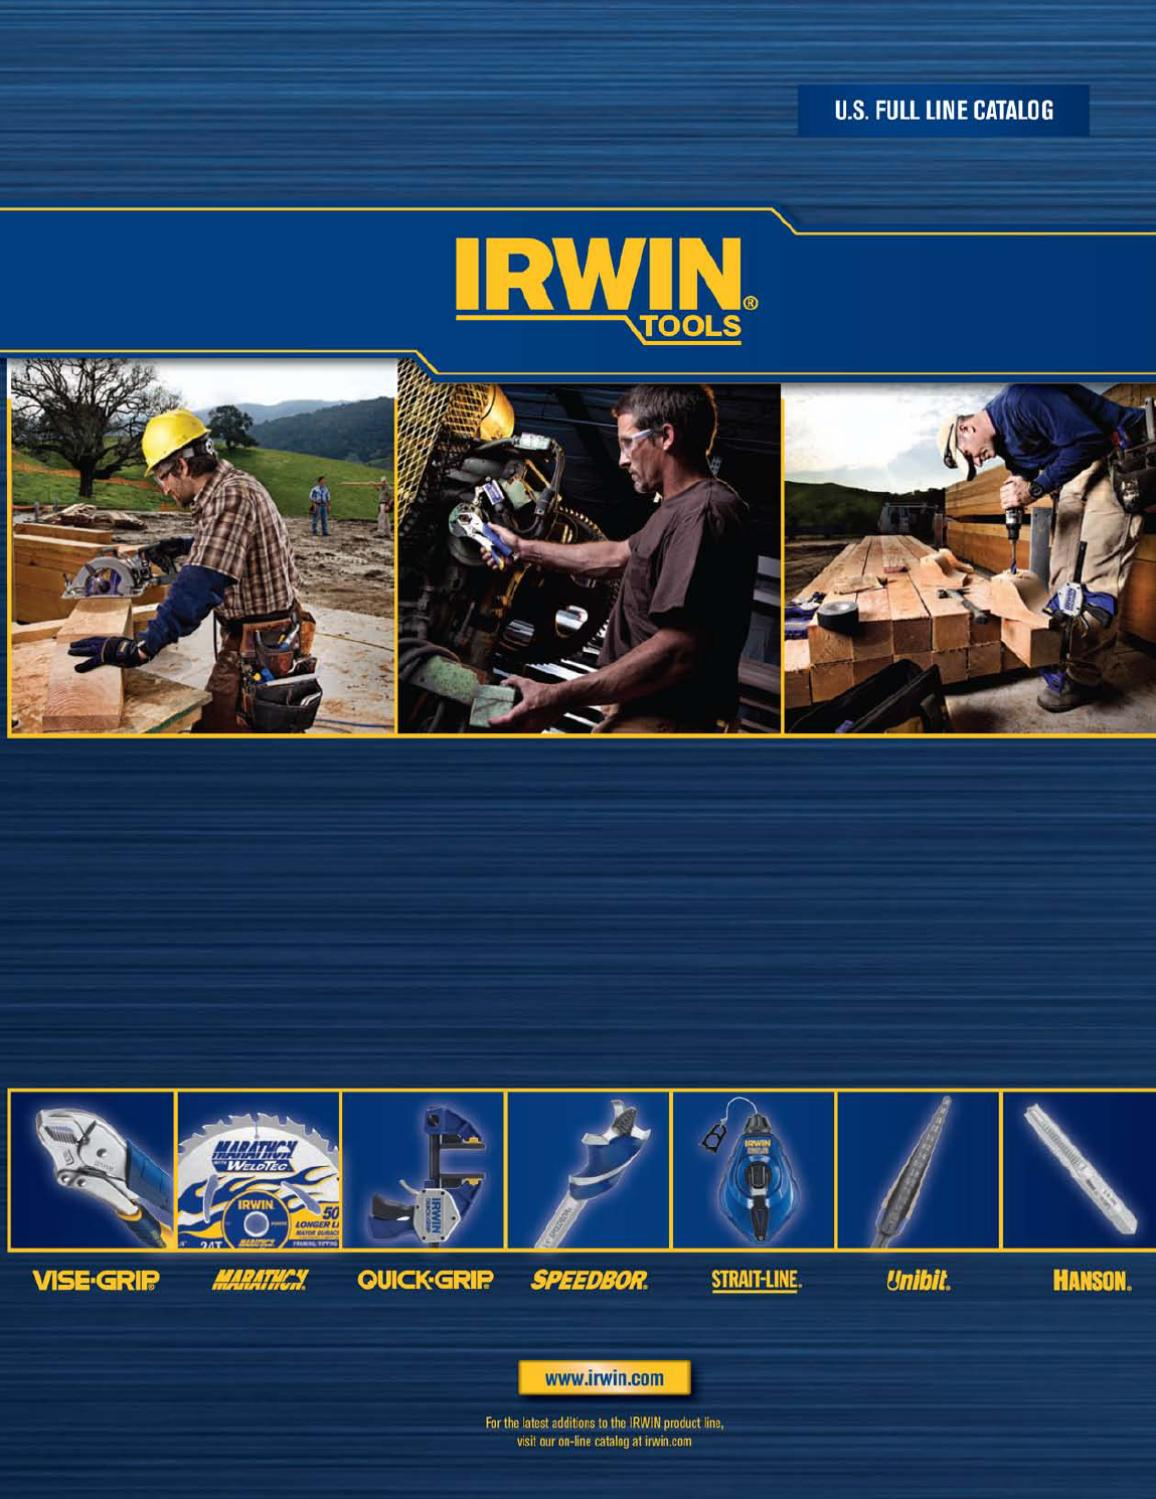 L Bi-Metal  Hole Saw  1 pc. Irwin  2-1//2 in x 2 in Dia